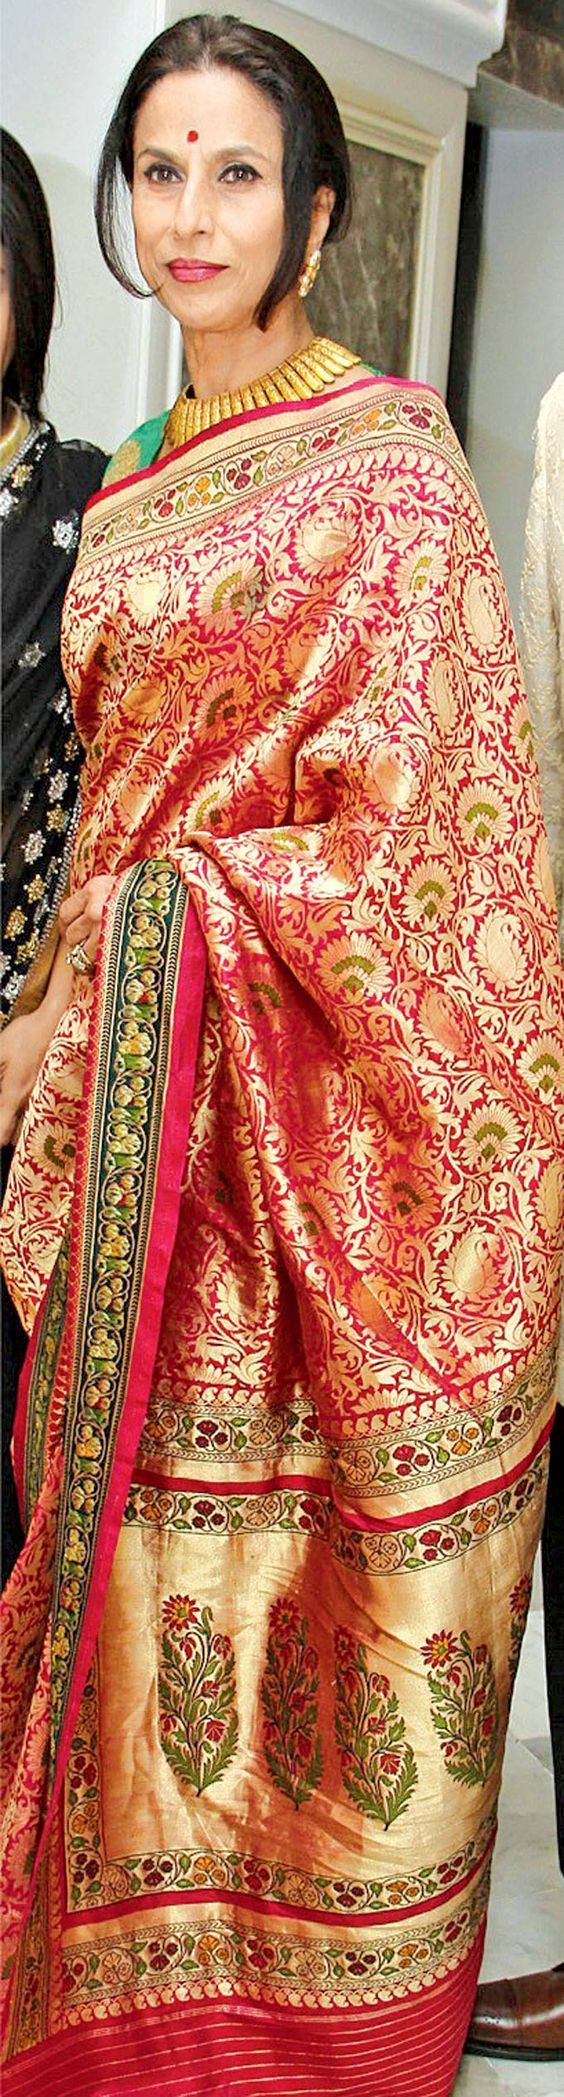 Shoba Dey in gold banaras saree